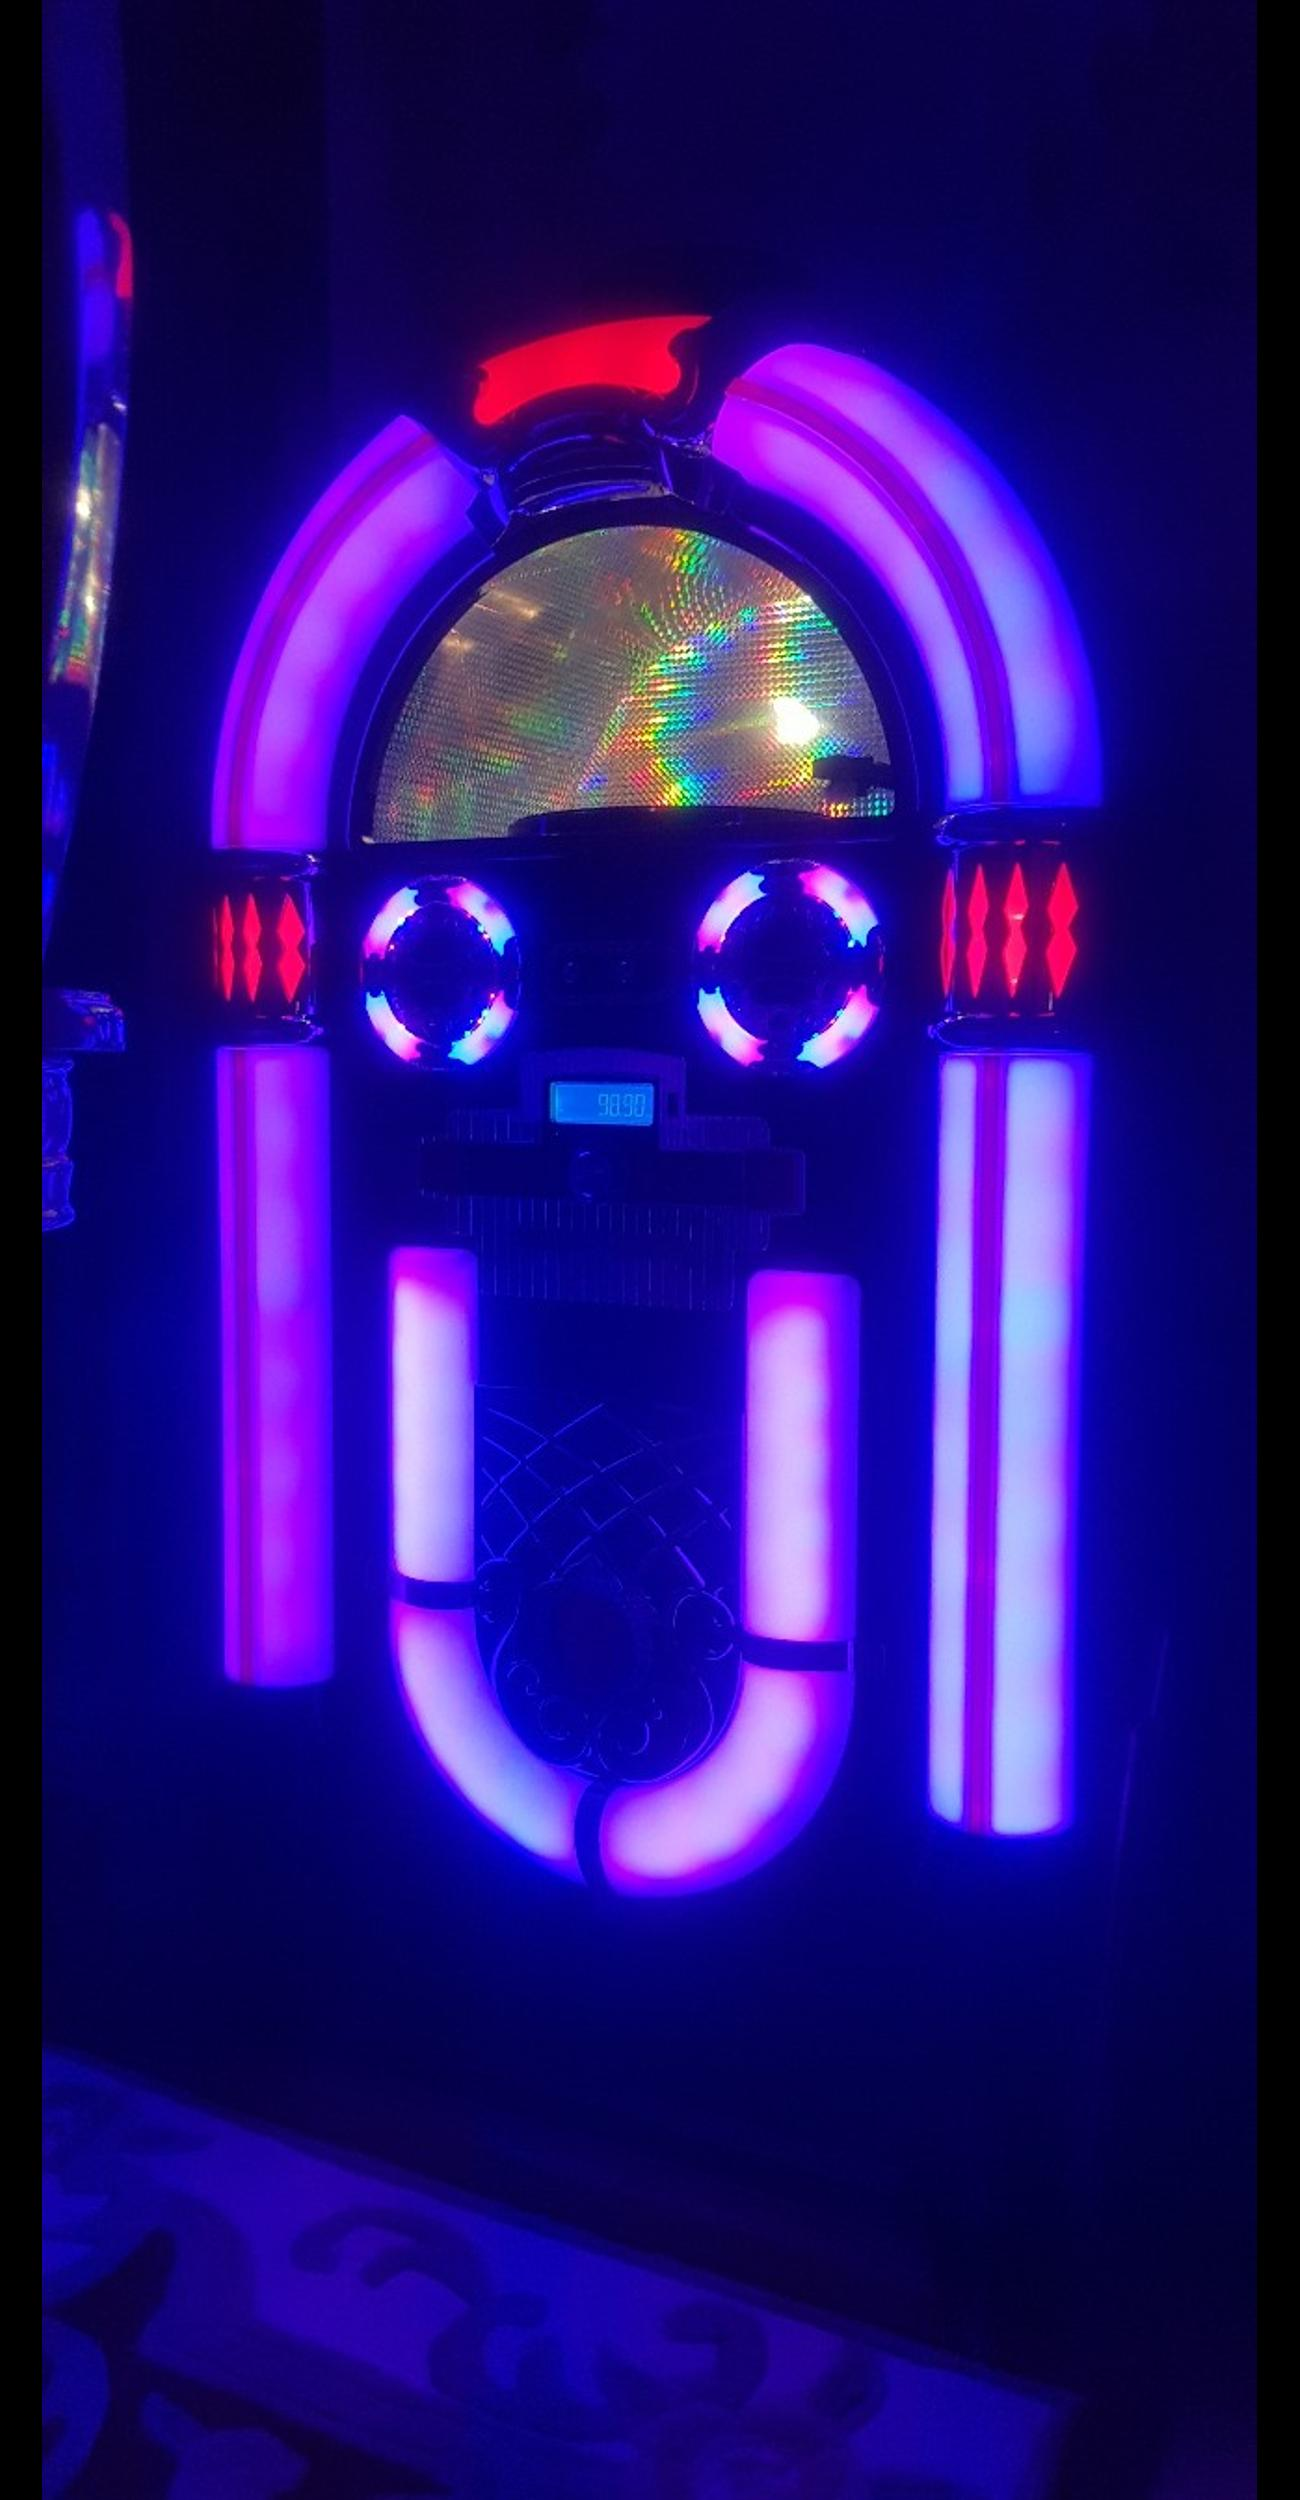 Jukebox in Barnsley for £300 00 for sale - Shpock